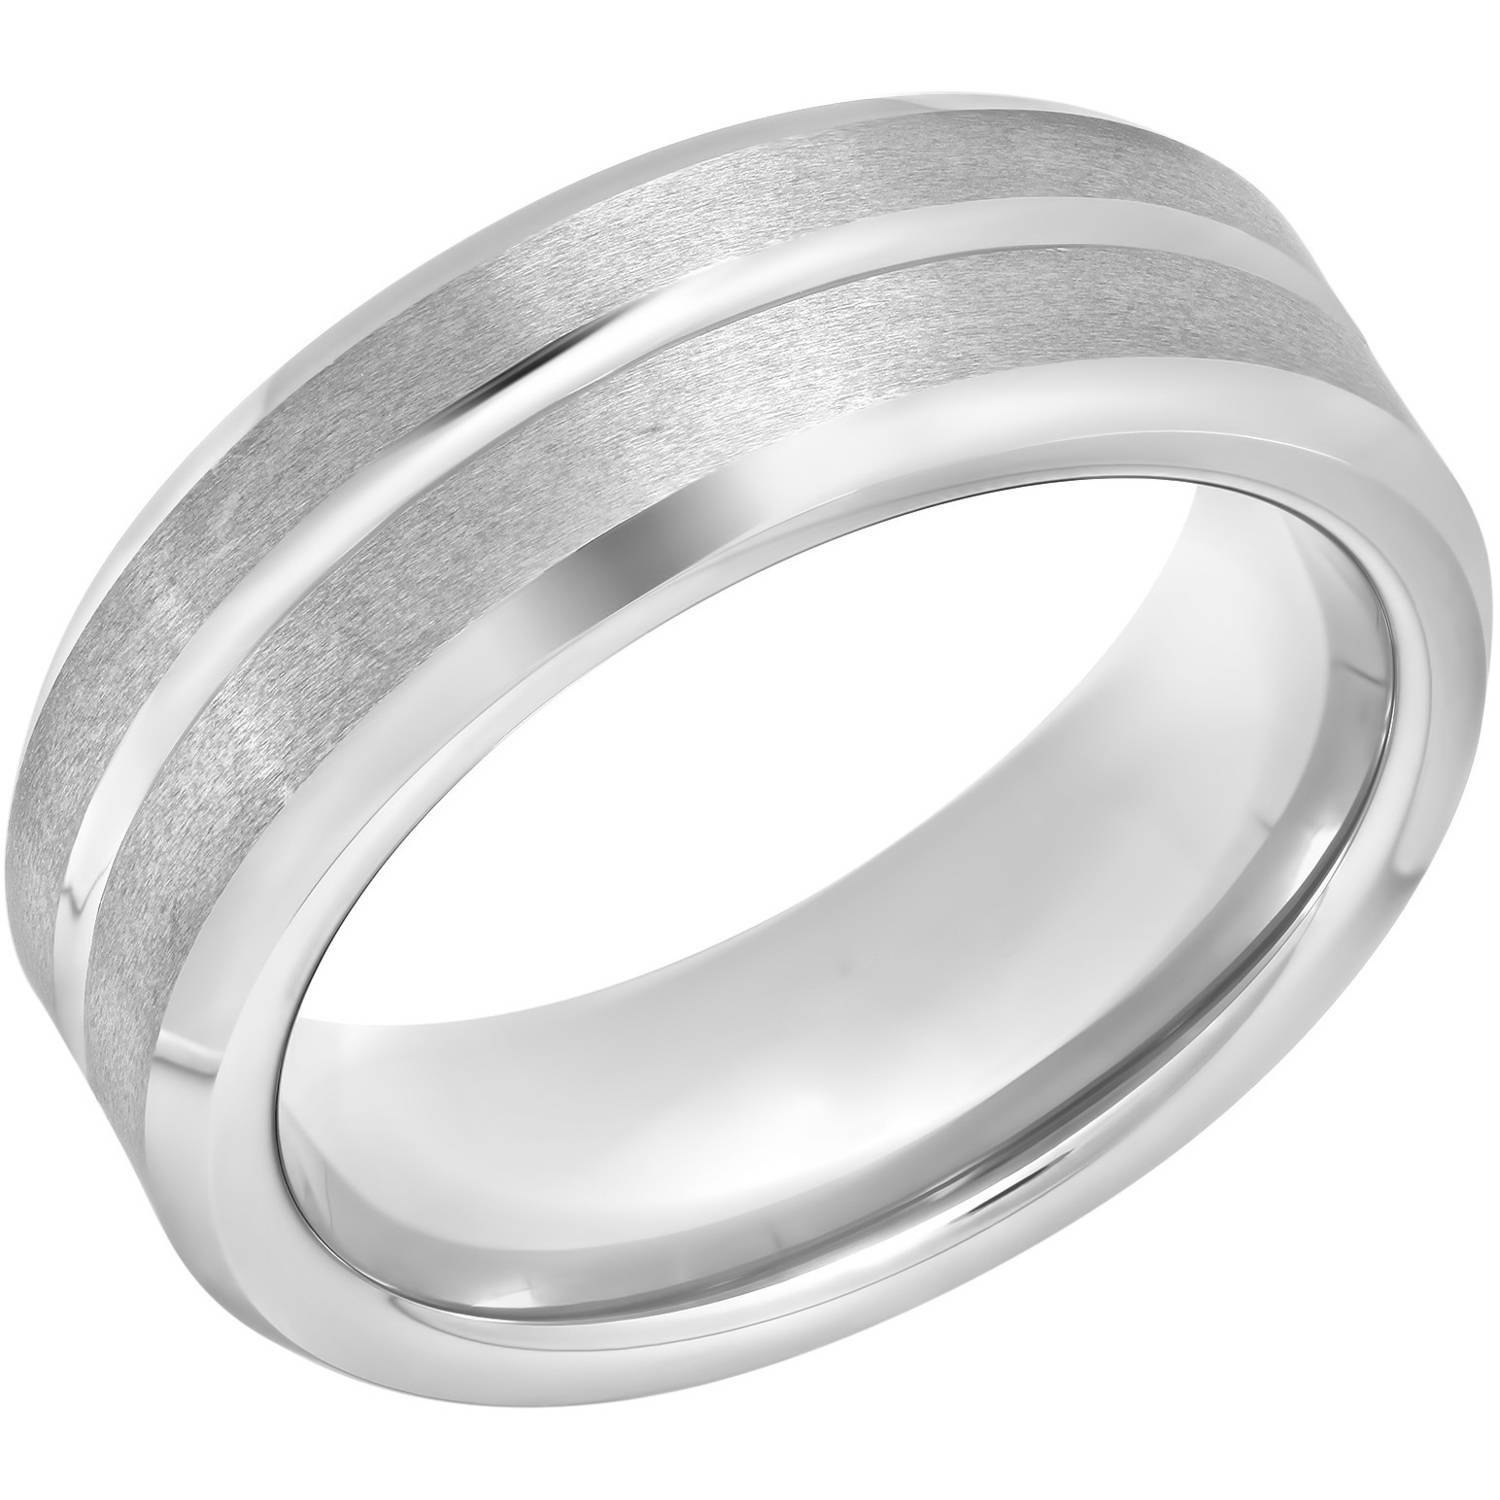 Men's Tungsten 8Mm Satin And High Polish Grooved Wedding Band Inside Walmart Men's Wedding Bands (View 7 of 15)